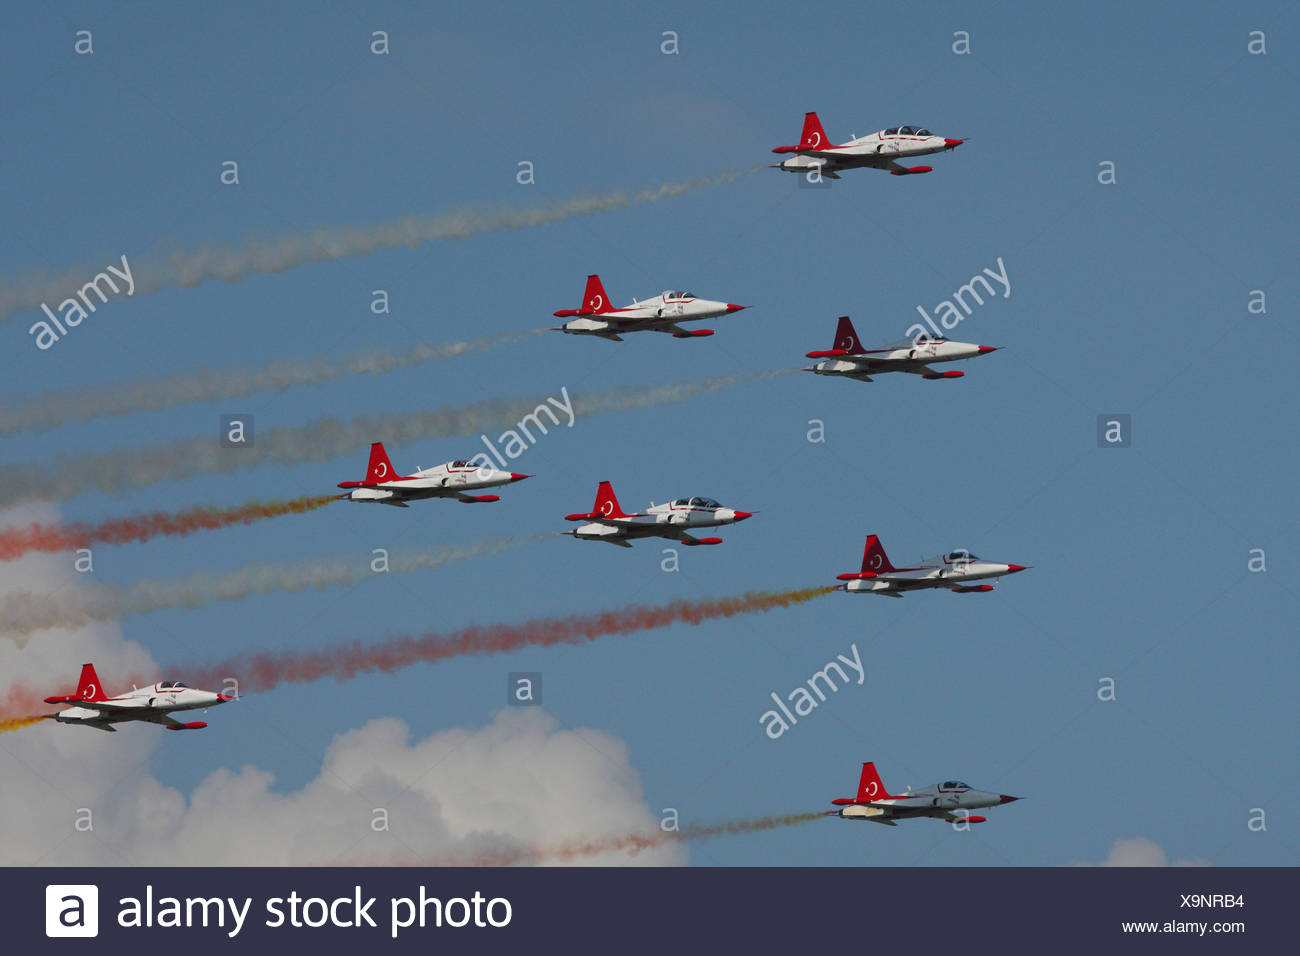 A military performance at an aerial show. Stock Photo